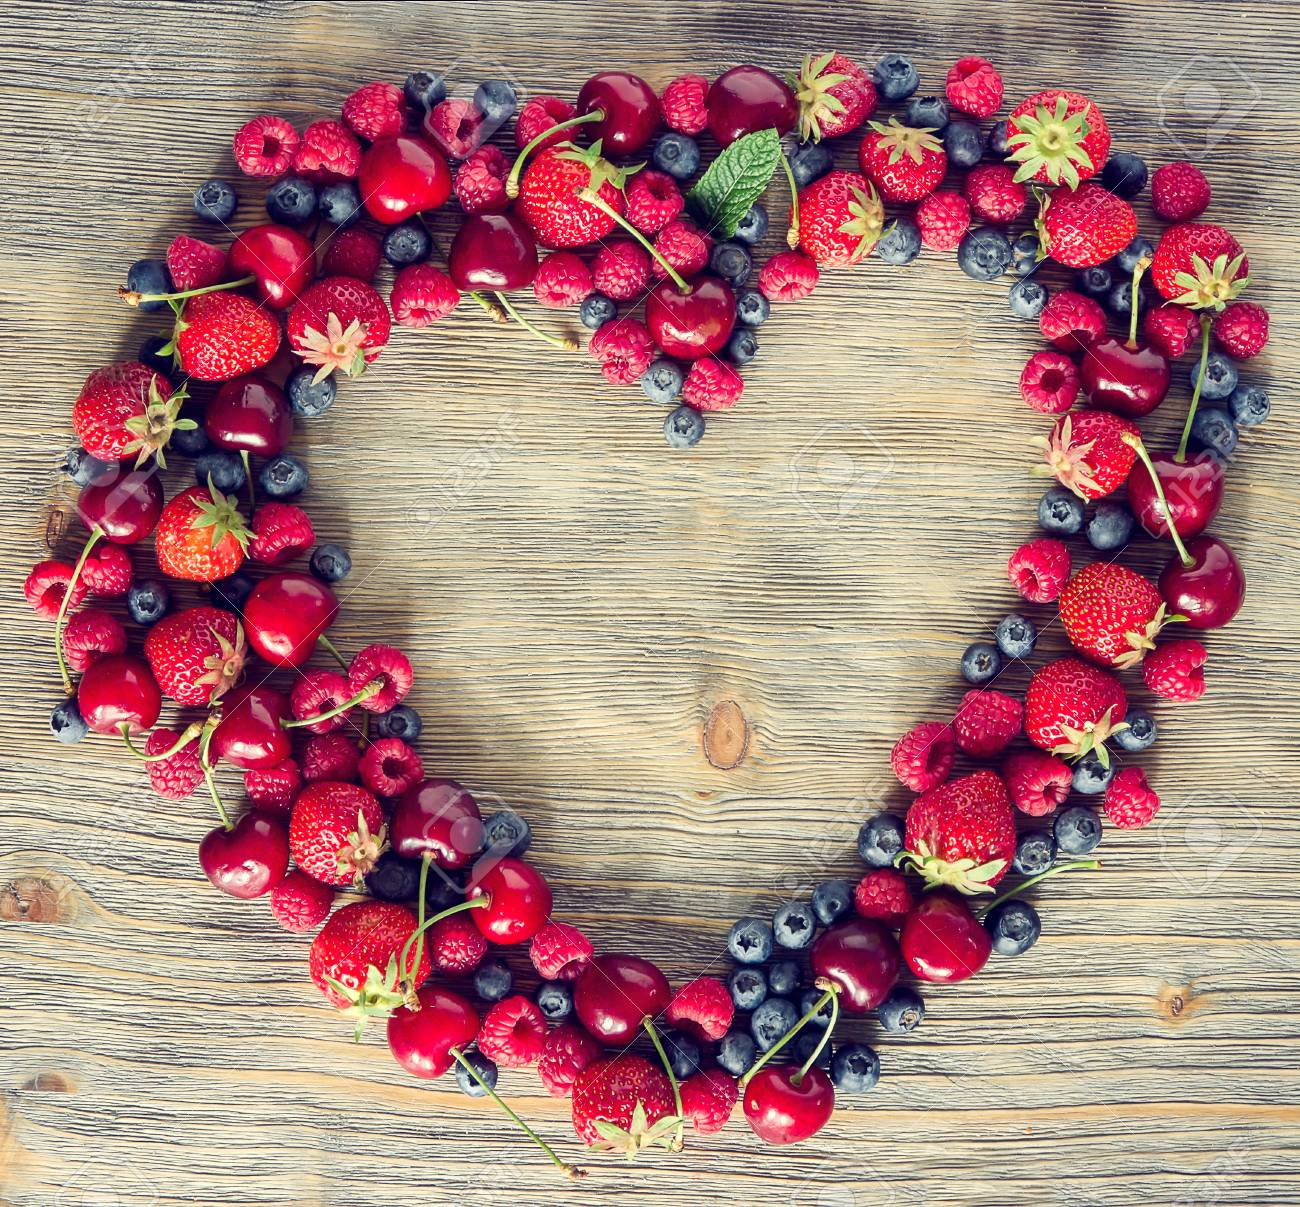 Fresh ripe berries, cherries, raspberries, blueberries lots of copy space, wooden background, summer fruits, harvest concept, vitamins food, heart shaped, square toned image - 41906000